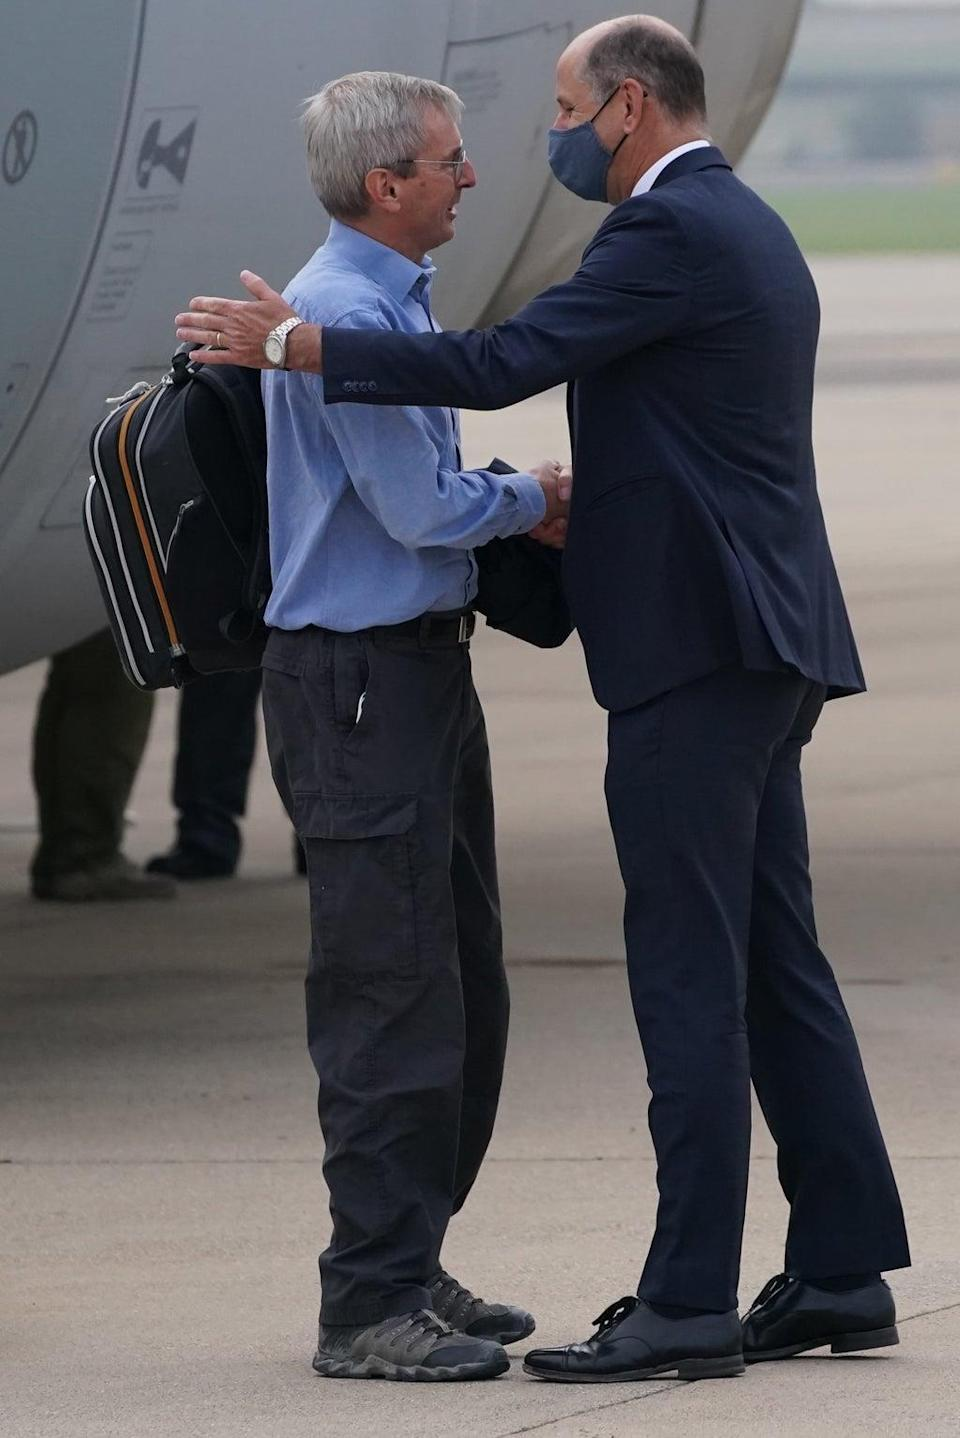 Ambassador to Afghanistan Sir Laurie Bristow, left, is greeted by Sir Philip Barton, Permanent Under-Secretary of the Foreign, Commonwealth and Development Office at RAF Brize Norton (Jonathan Brady/PA) (PA Wire)